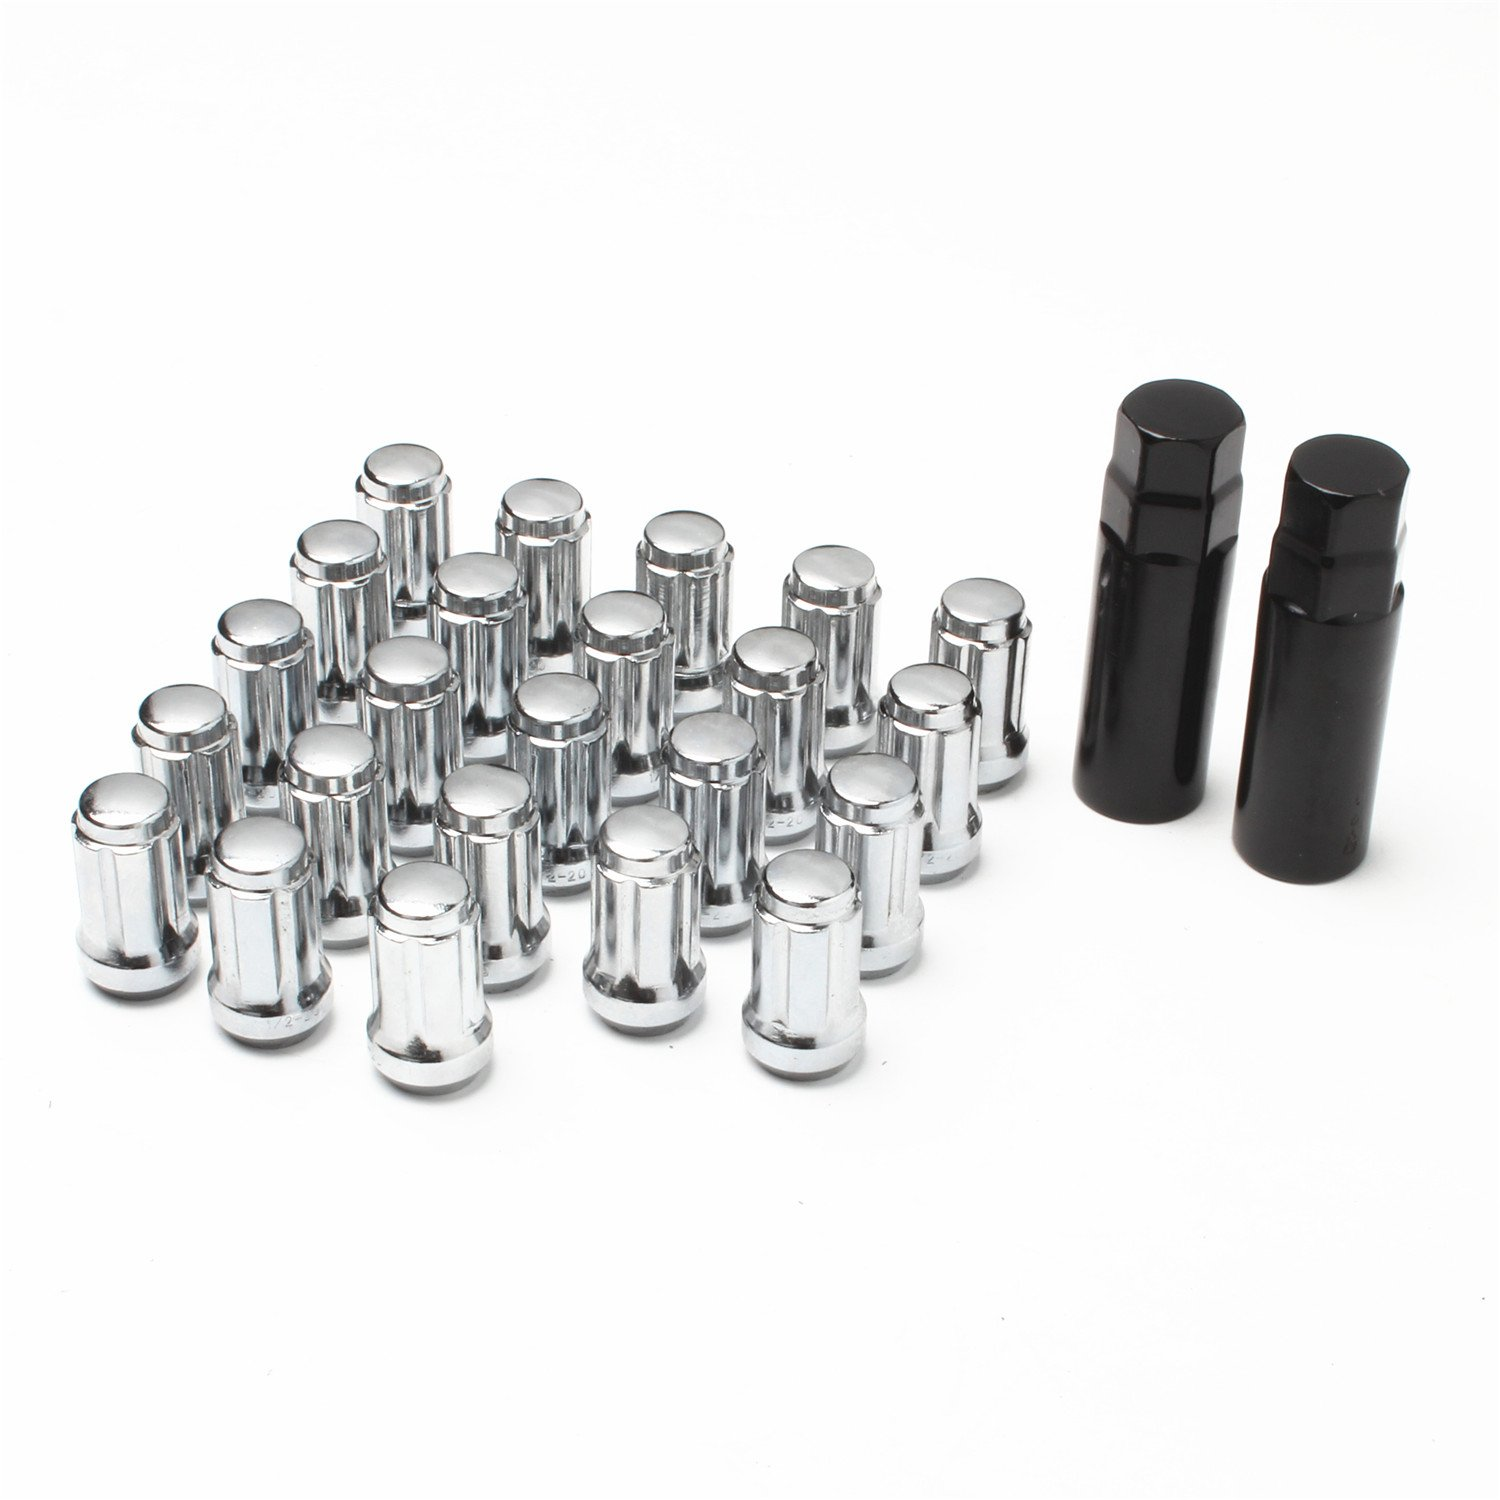 APL-N021C Set of 23pcs 1/2 x 20 with 2 Keys 1.38'' 35mm Chrome Spline Lug Nuts Closed End Long fit Jeep Dodge Ford Lincoln Mercury